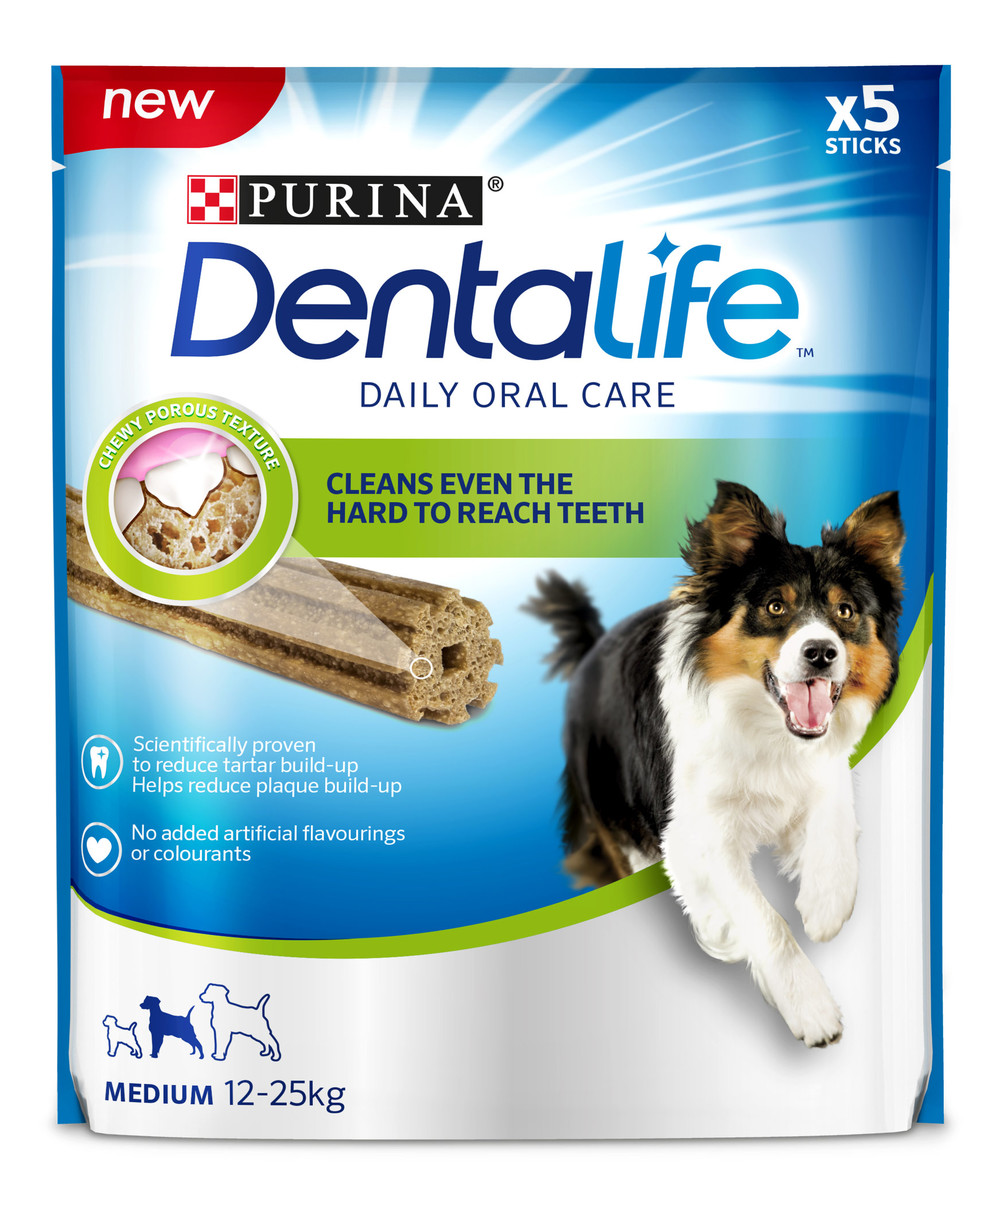 Purina Dentalife ad campaign photography